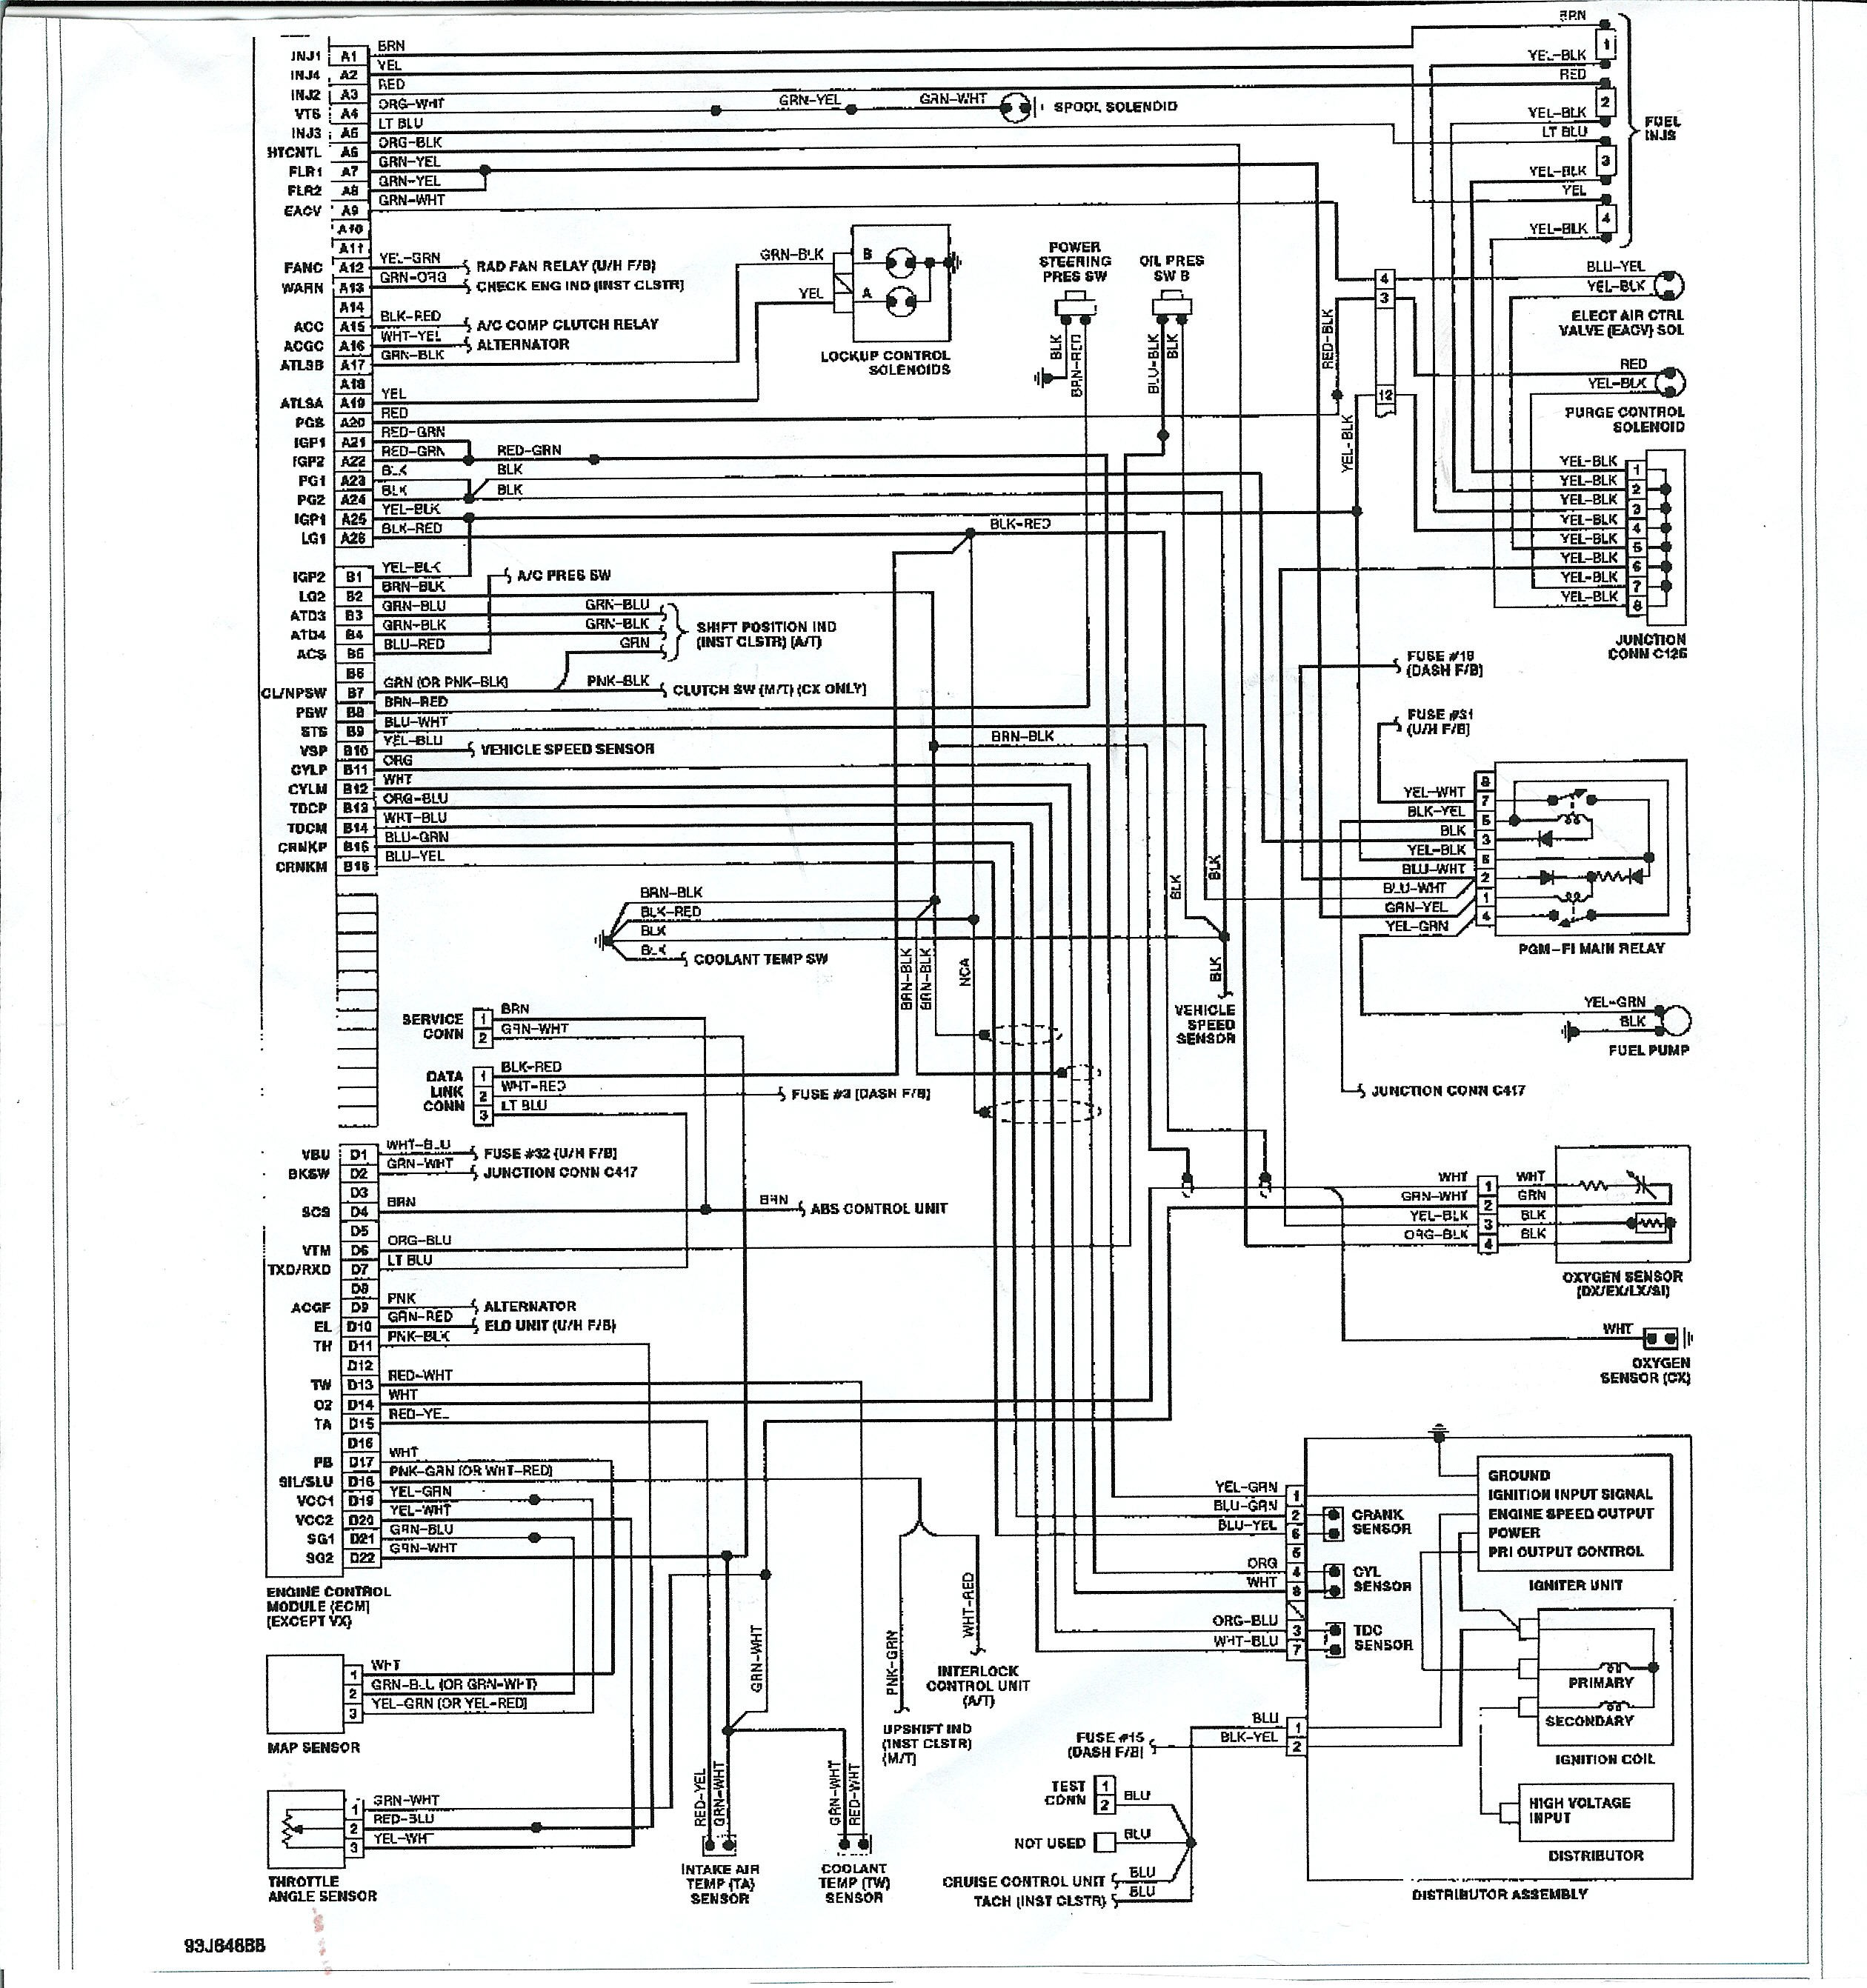 95 Honda Civic Engine Diagram Vw Transporter Wiring Diagram 95 Honda Civic Transmission Diagram